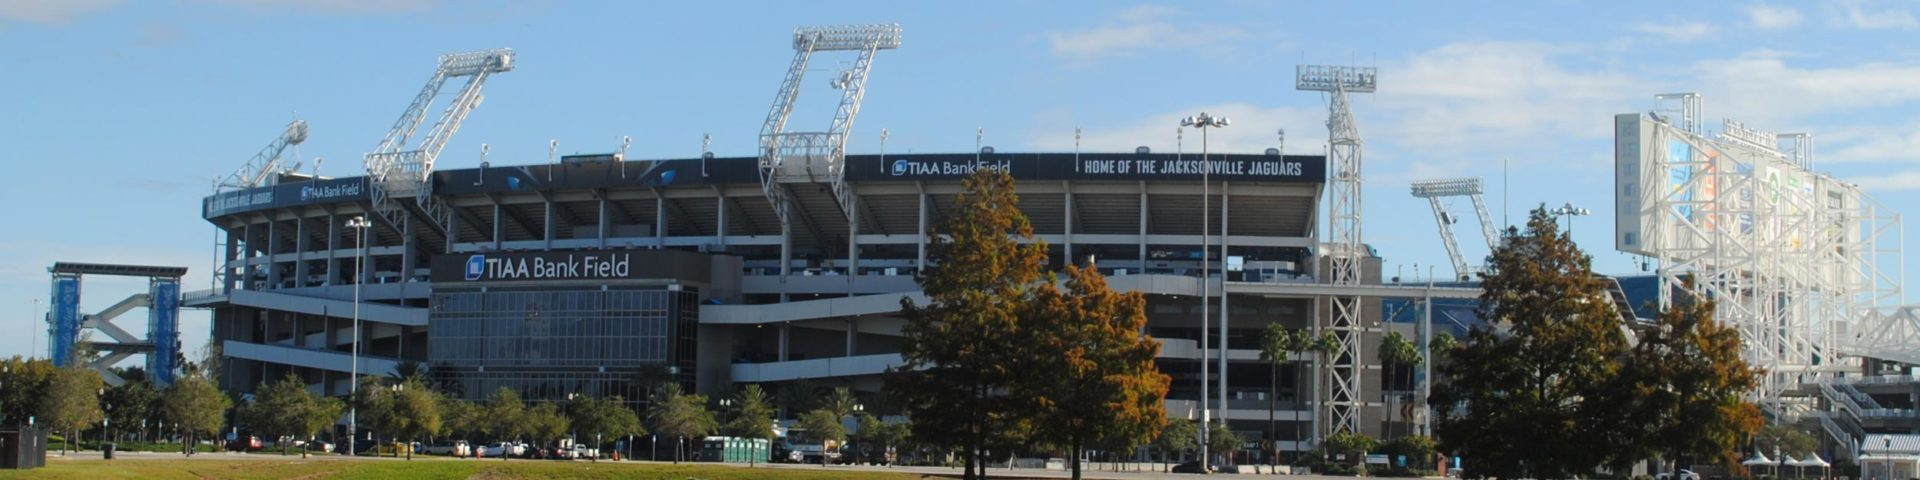 Photo of TIAA Bank Field from Wikipedia Commons with attribution to Excel23 under Attribution-ShareAlike 4.0 International